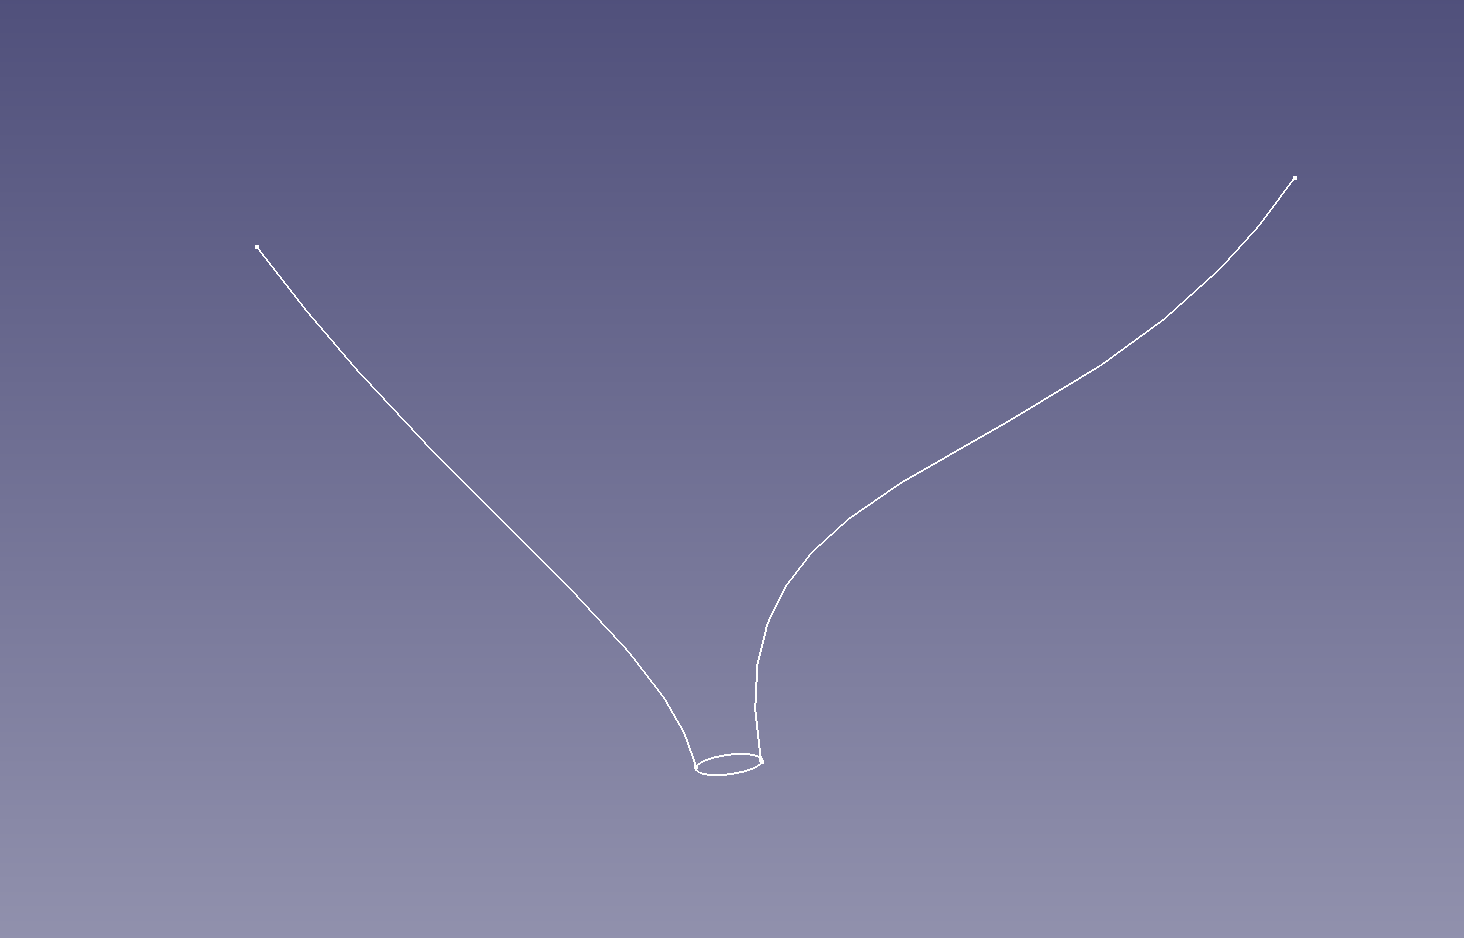 Generate solid by sweeping ellipse bounded by two curves upward